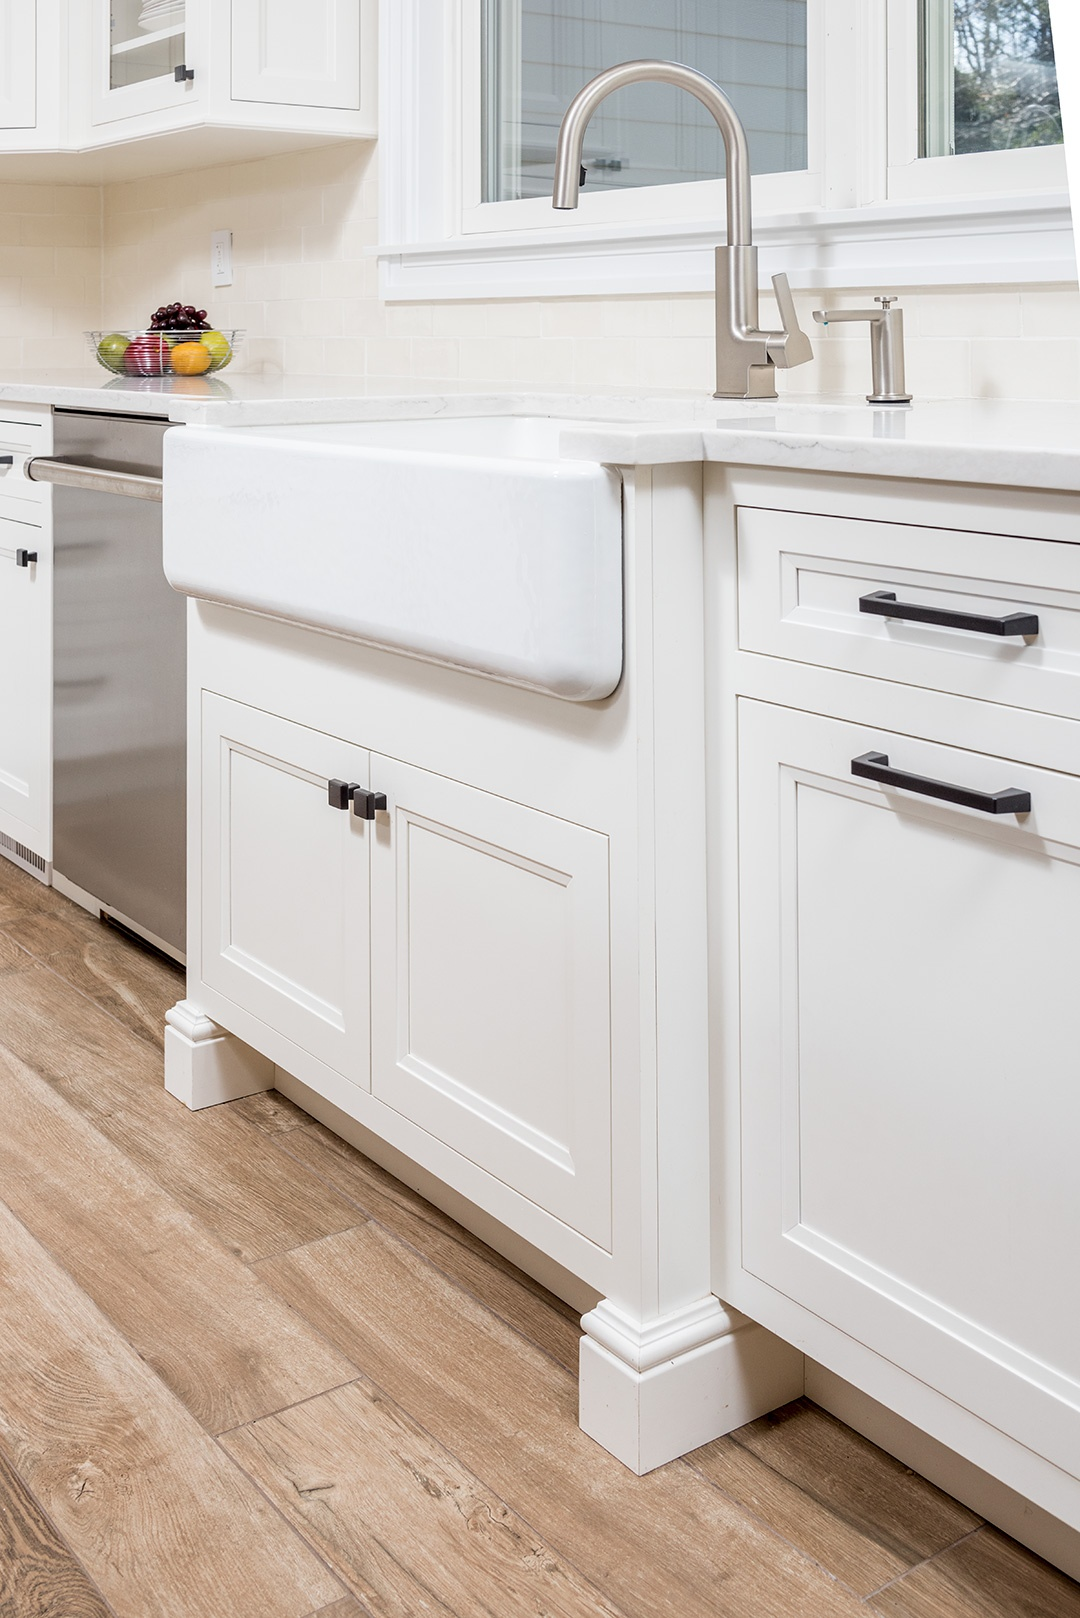 We Are An Authorized Dealer Of Some Of The Top Brands In Quality  Architectural Hardware. Give Your Kitchen The Design Details That Will Turn  Heads!